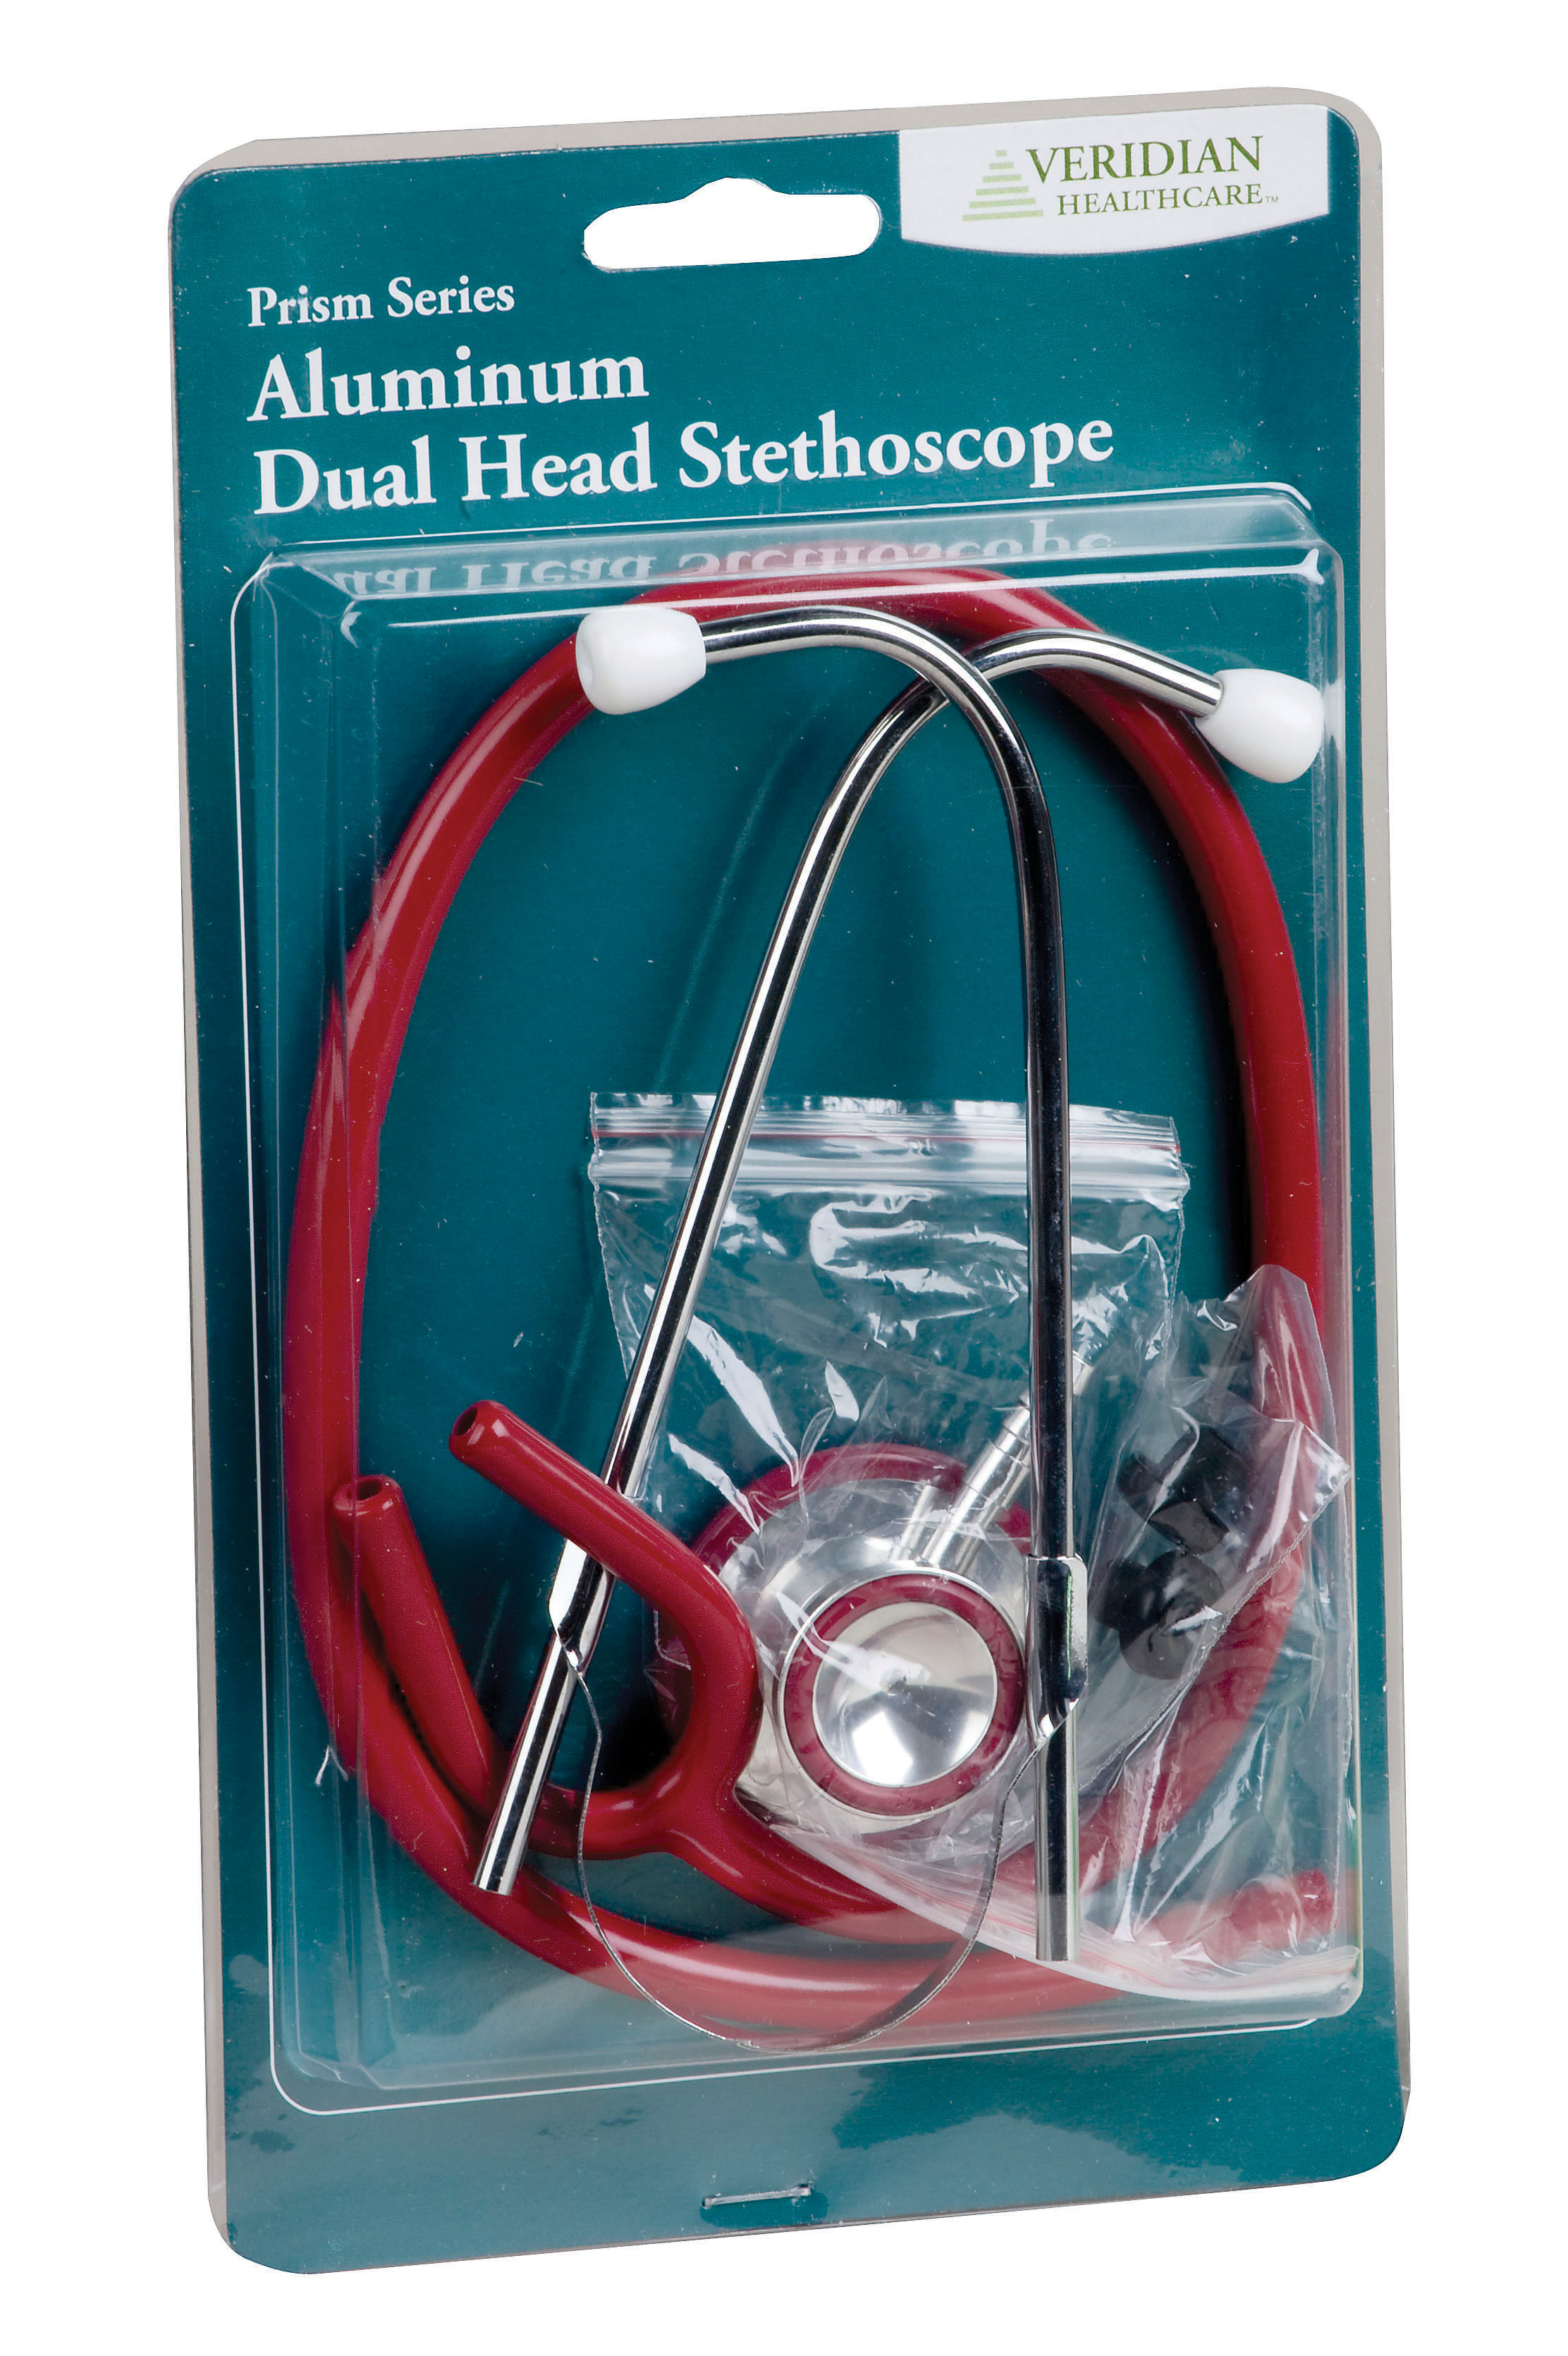 prism-series-aluminum-dual-head-stethoscope-navy-blue-slider-pack-05-12102-veridian-2.jpg